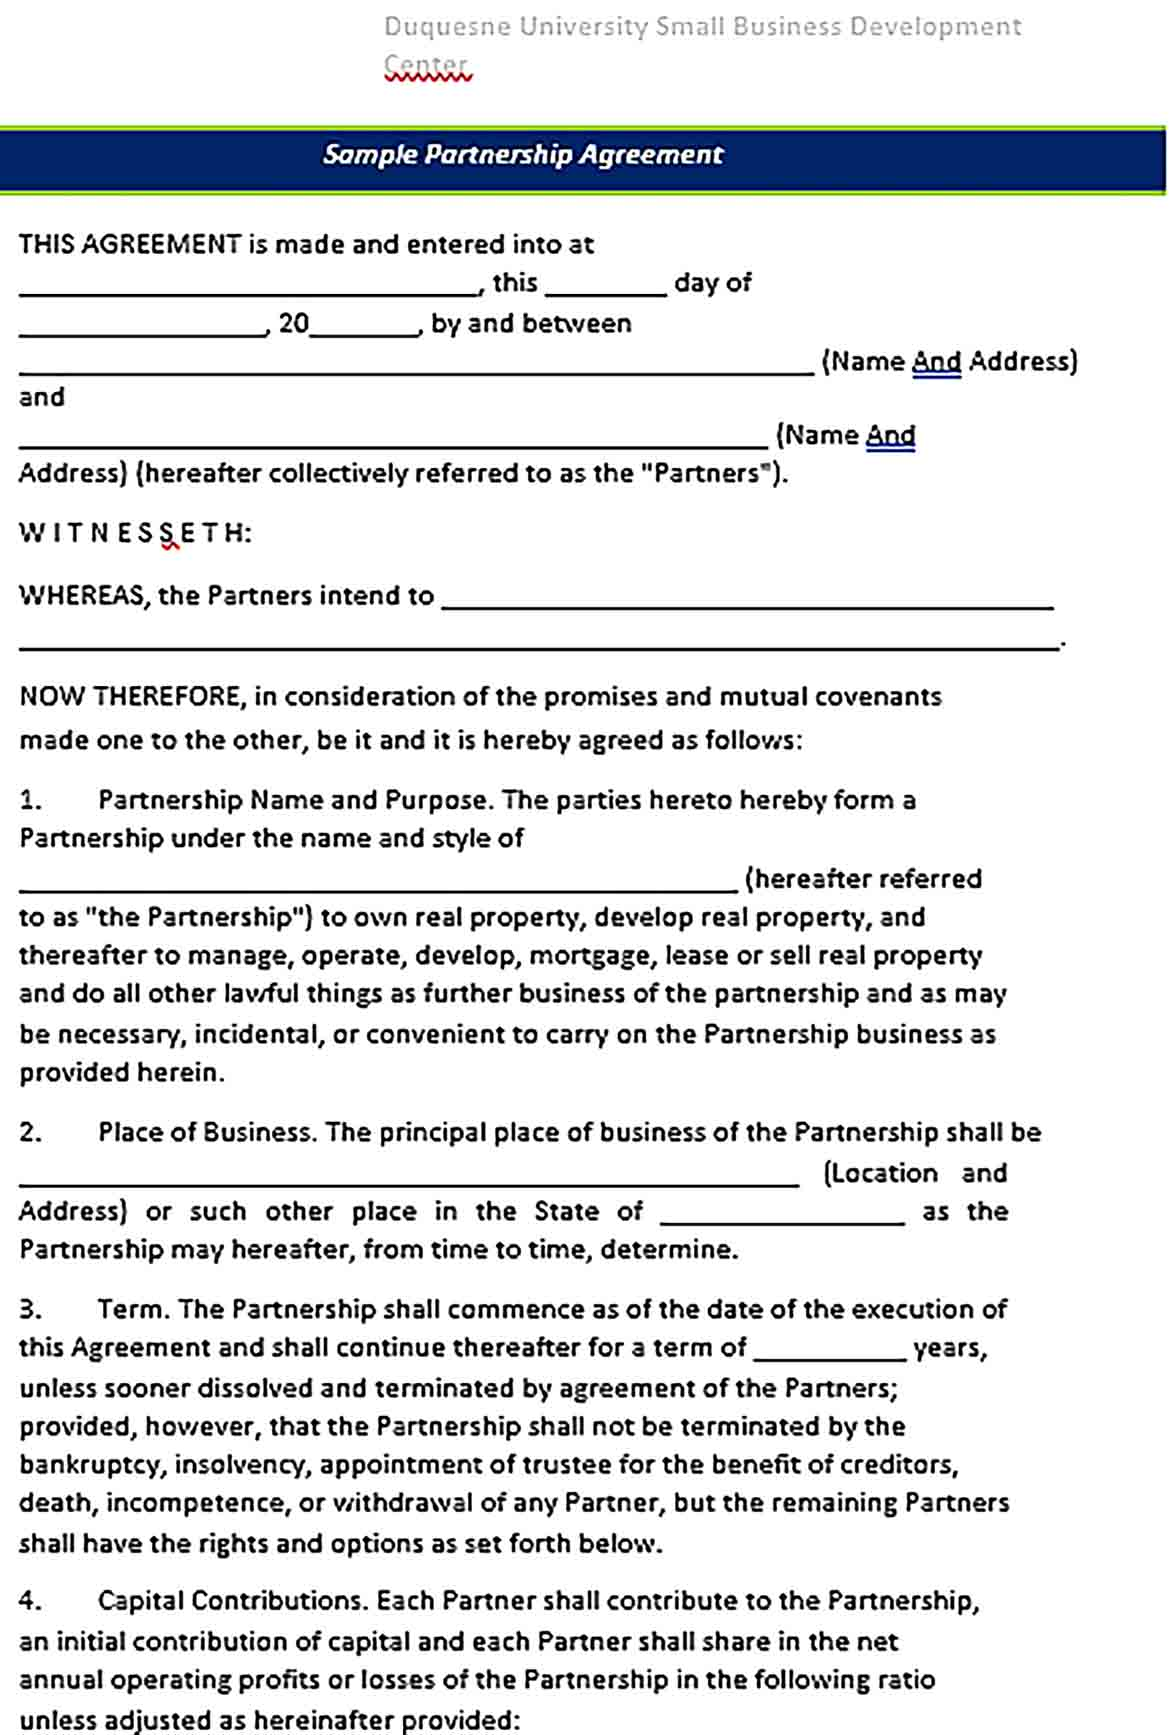 Sample Partnership Agreement For Small Business